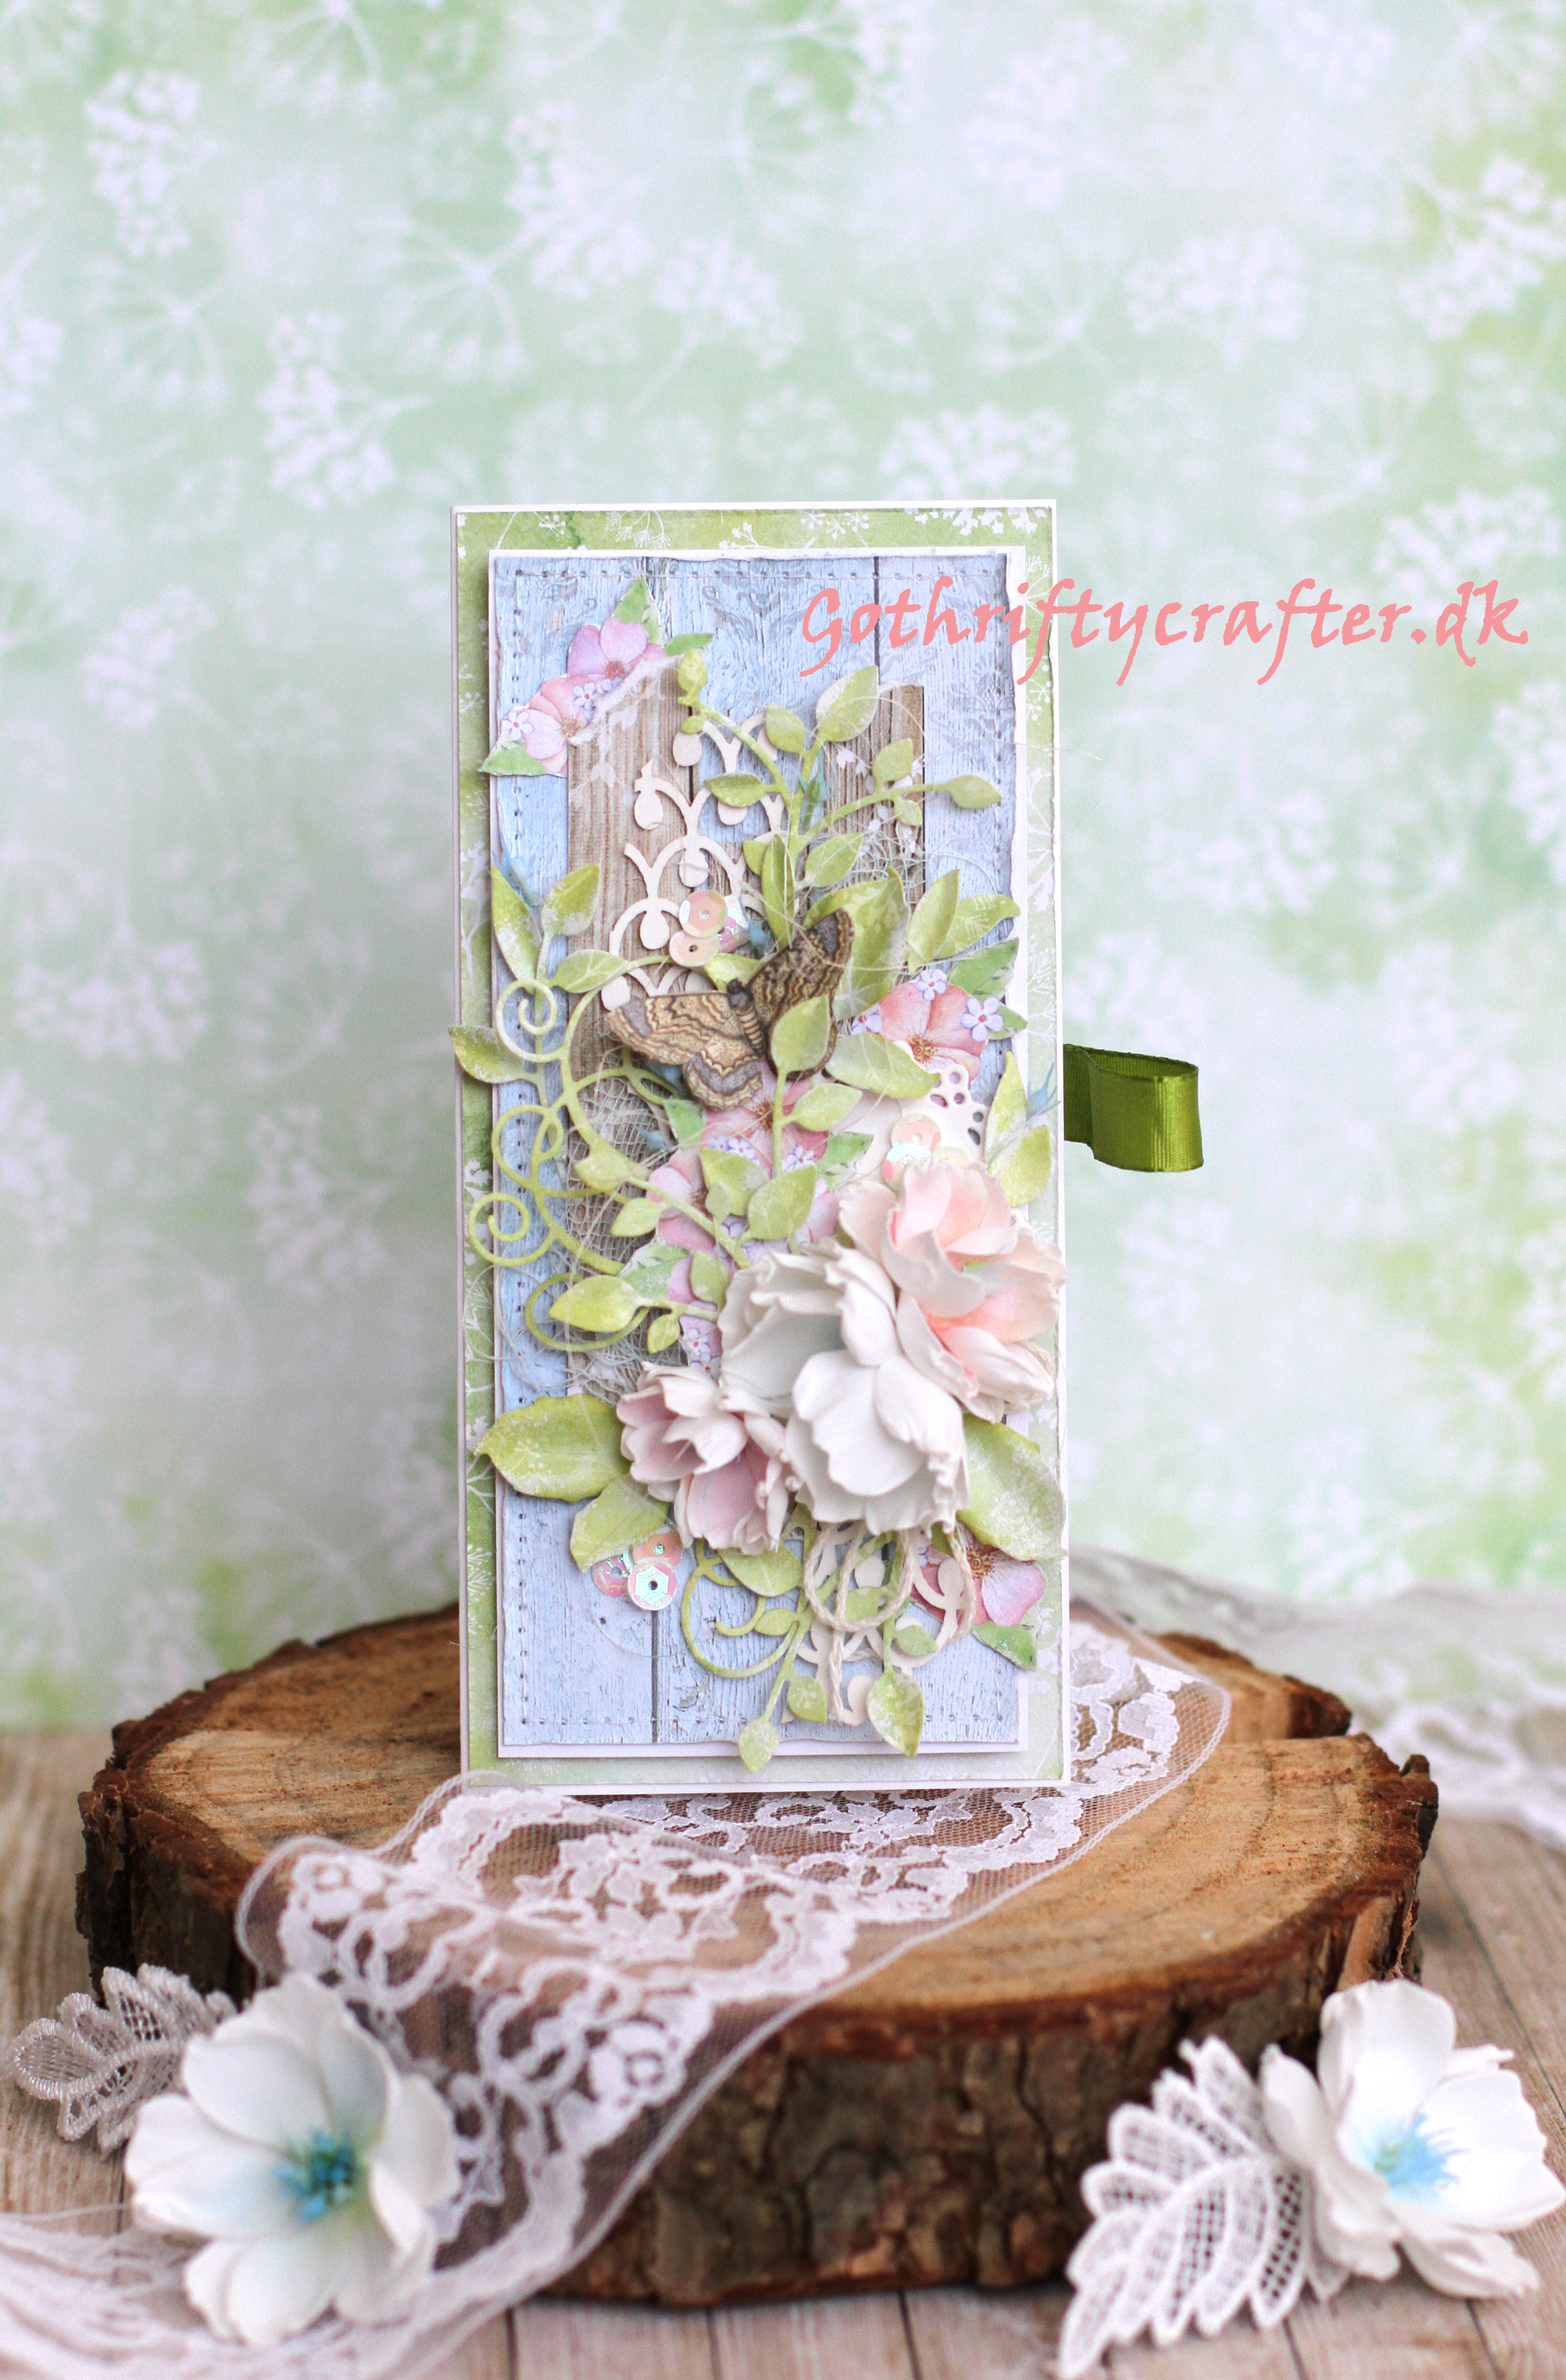 Gothriftycrafter scrapbooking card DIY reuse box flower foamiran Fabrika Decoru LadyE butterflyjpg